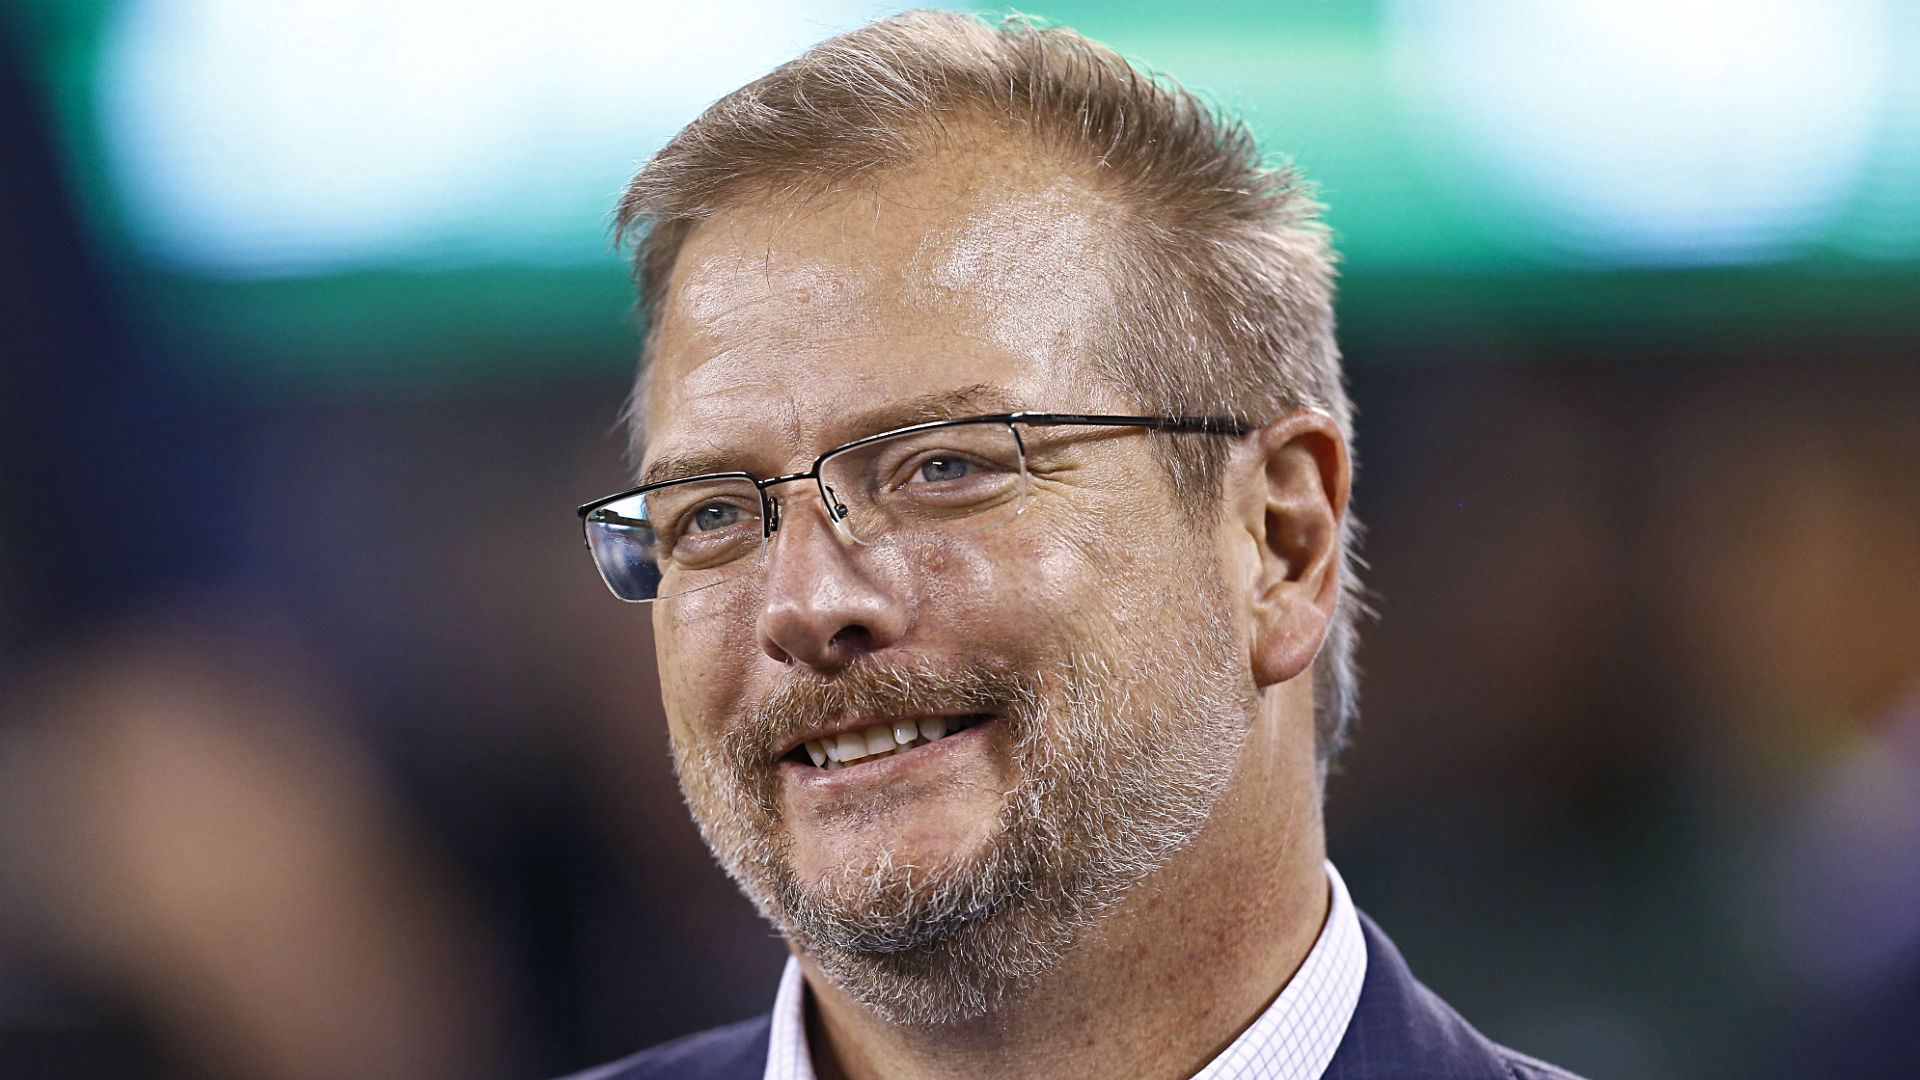 In a surprise move, the New York Jets have fired GM Mike Maccagnan shortly after he oversaw the draft and a busy free agency period.